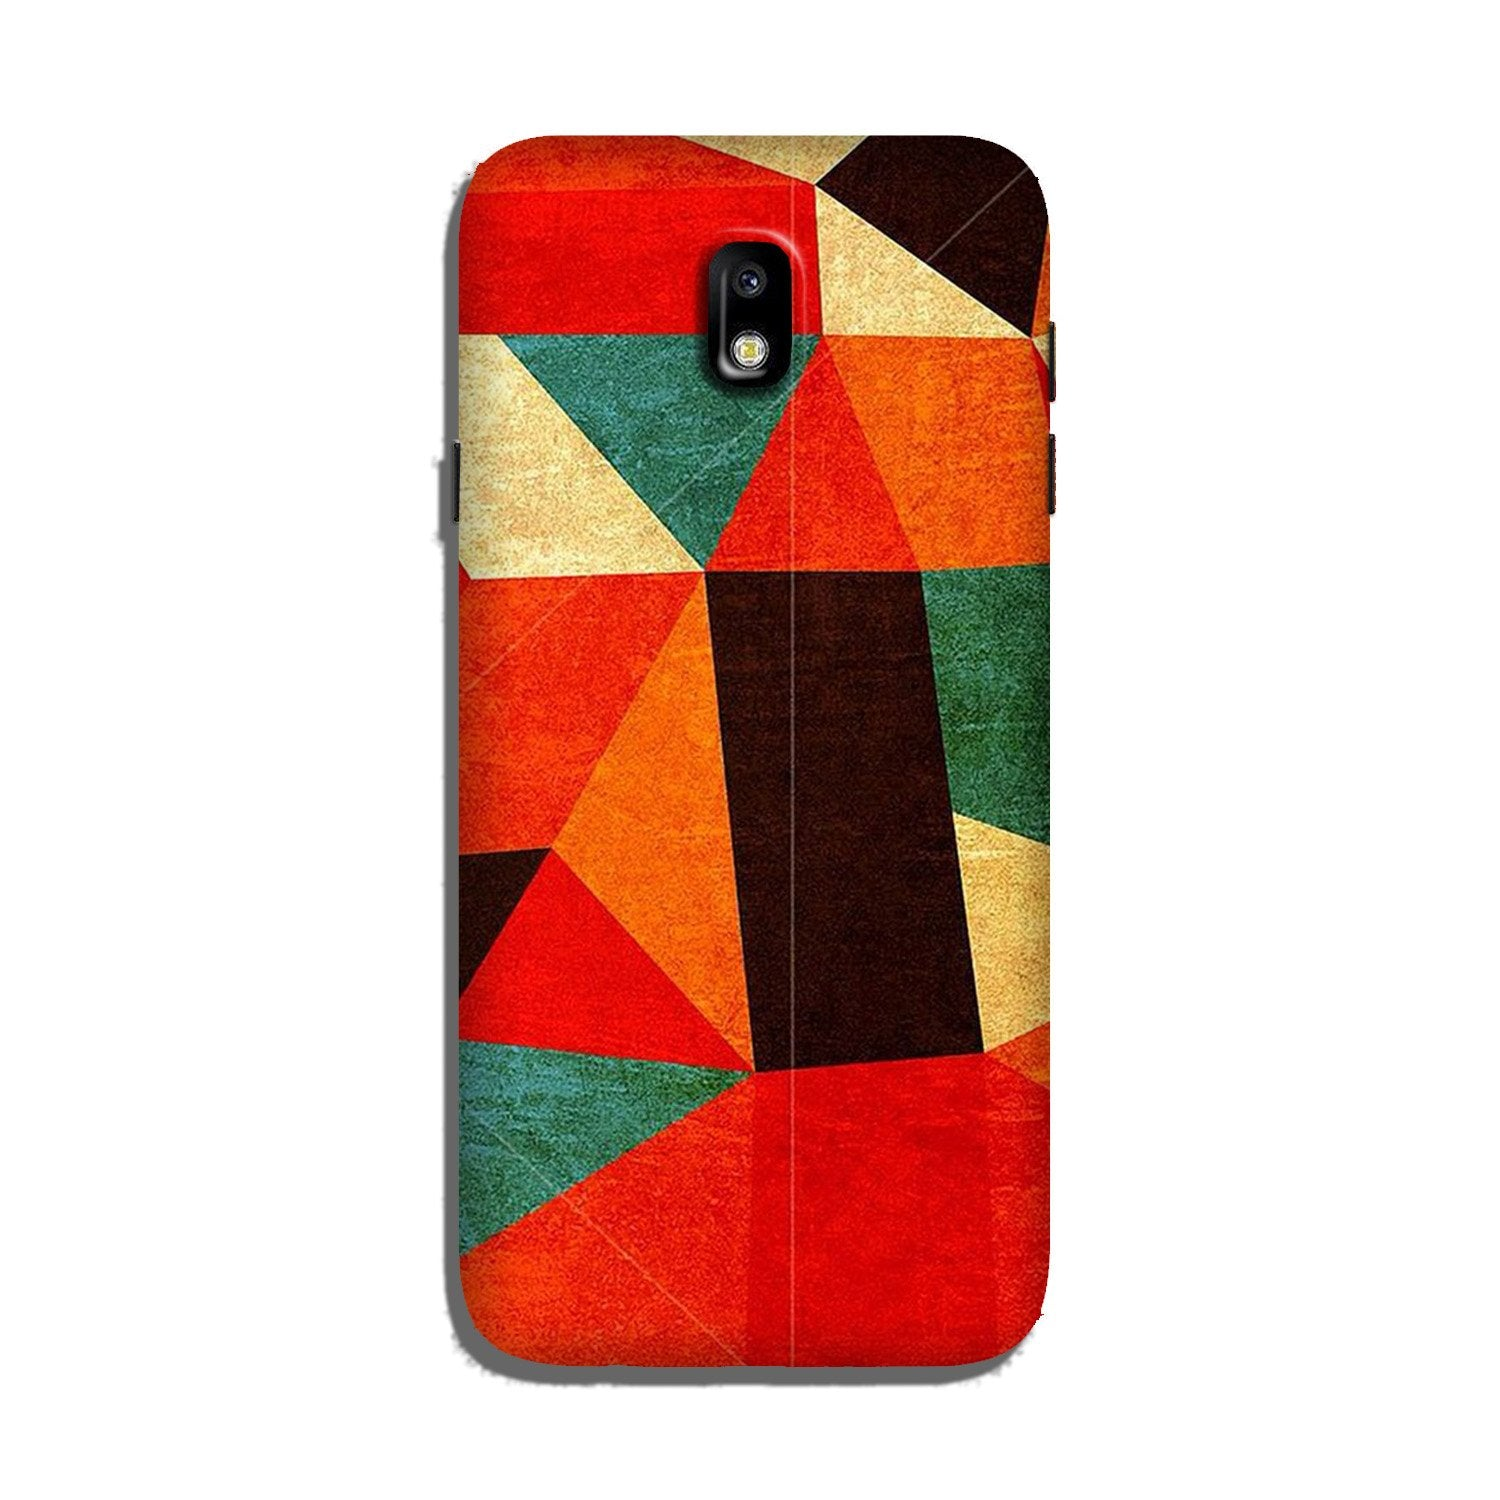 Modern Art Case for Galaxy J5 Pro (Design - 203)